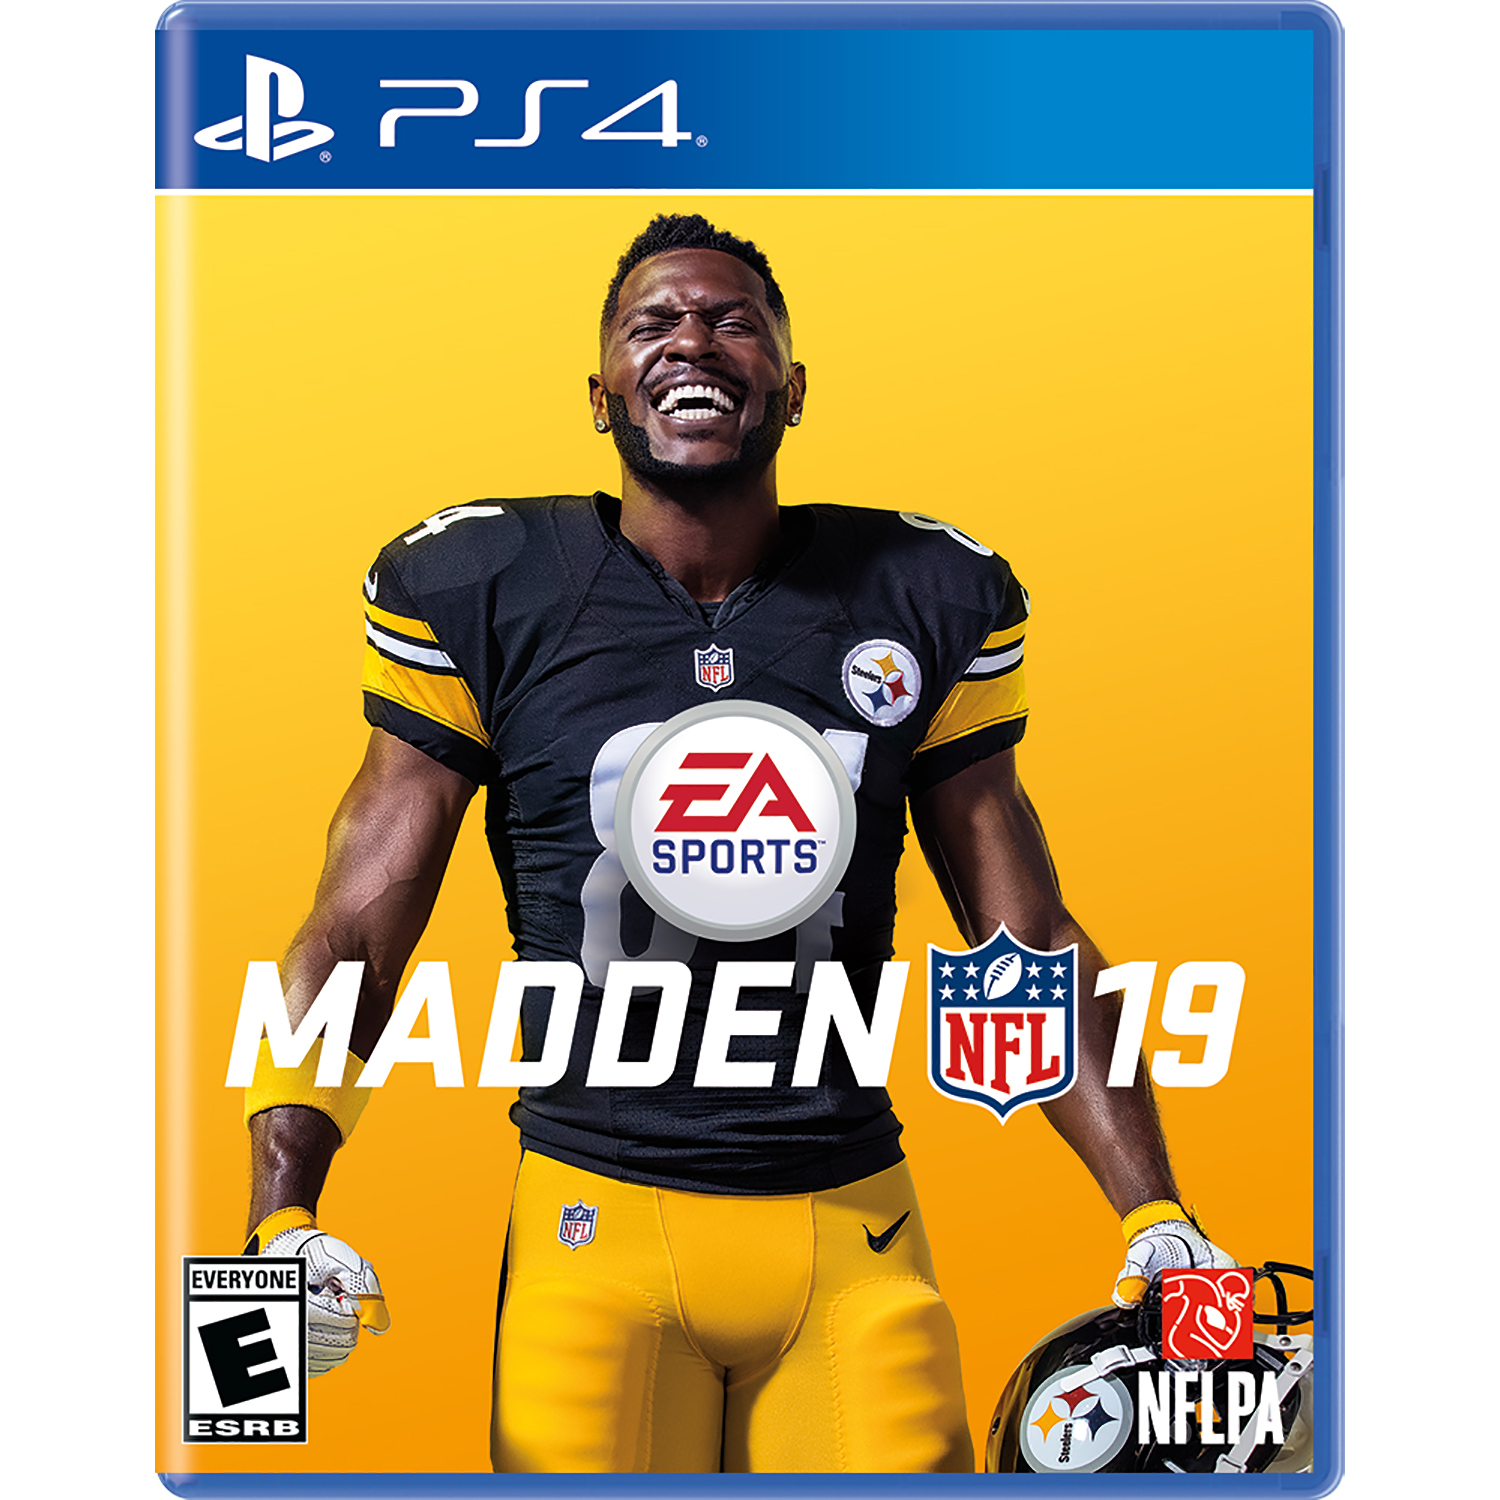 Madden NFL 19, Electronic Arts, PlayStation 4, REFURBISHED/PREOWNED